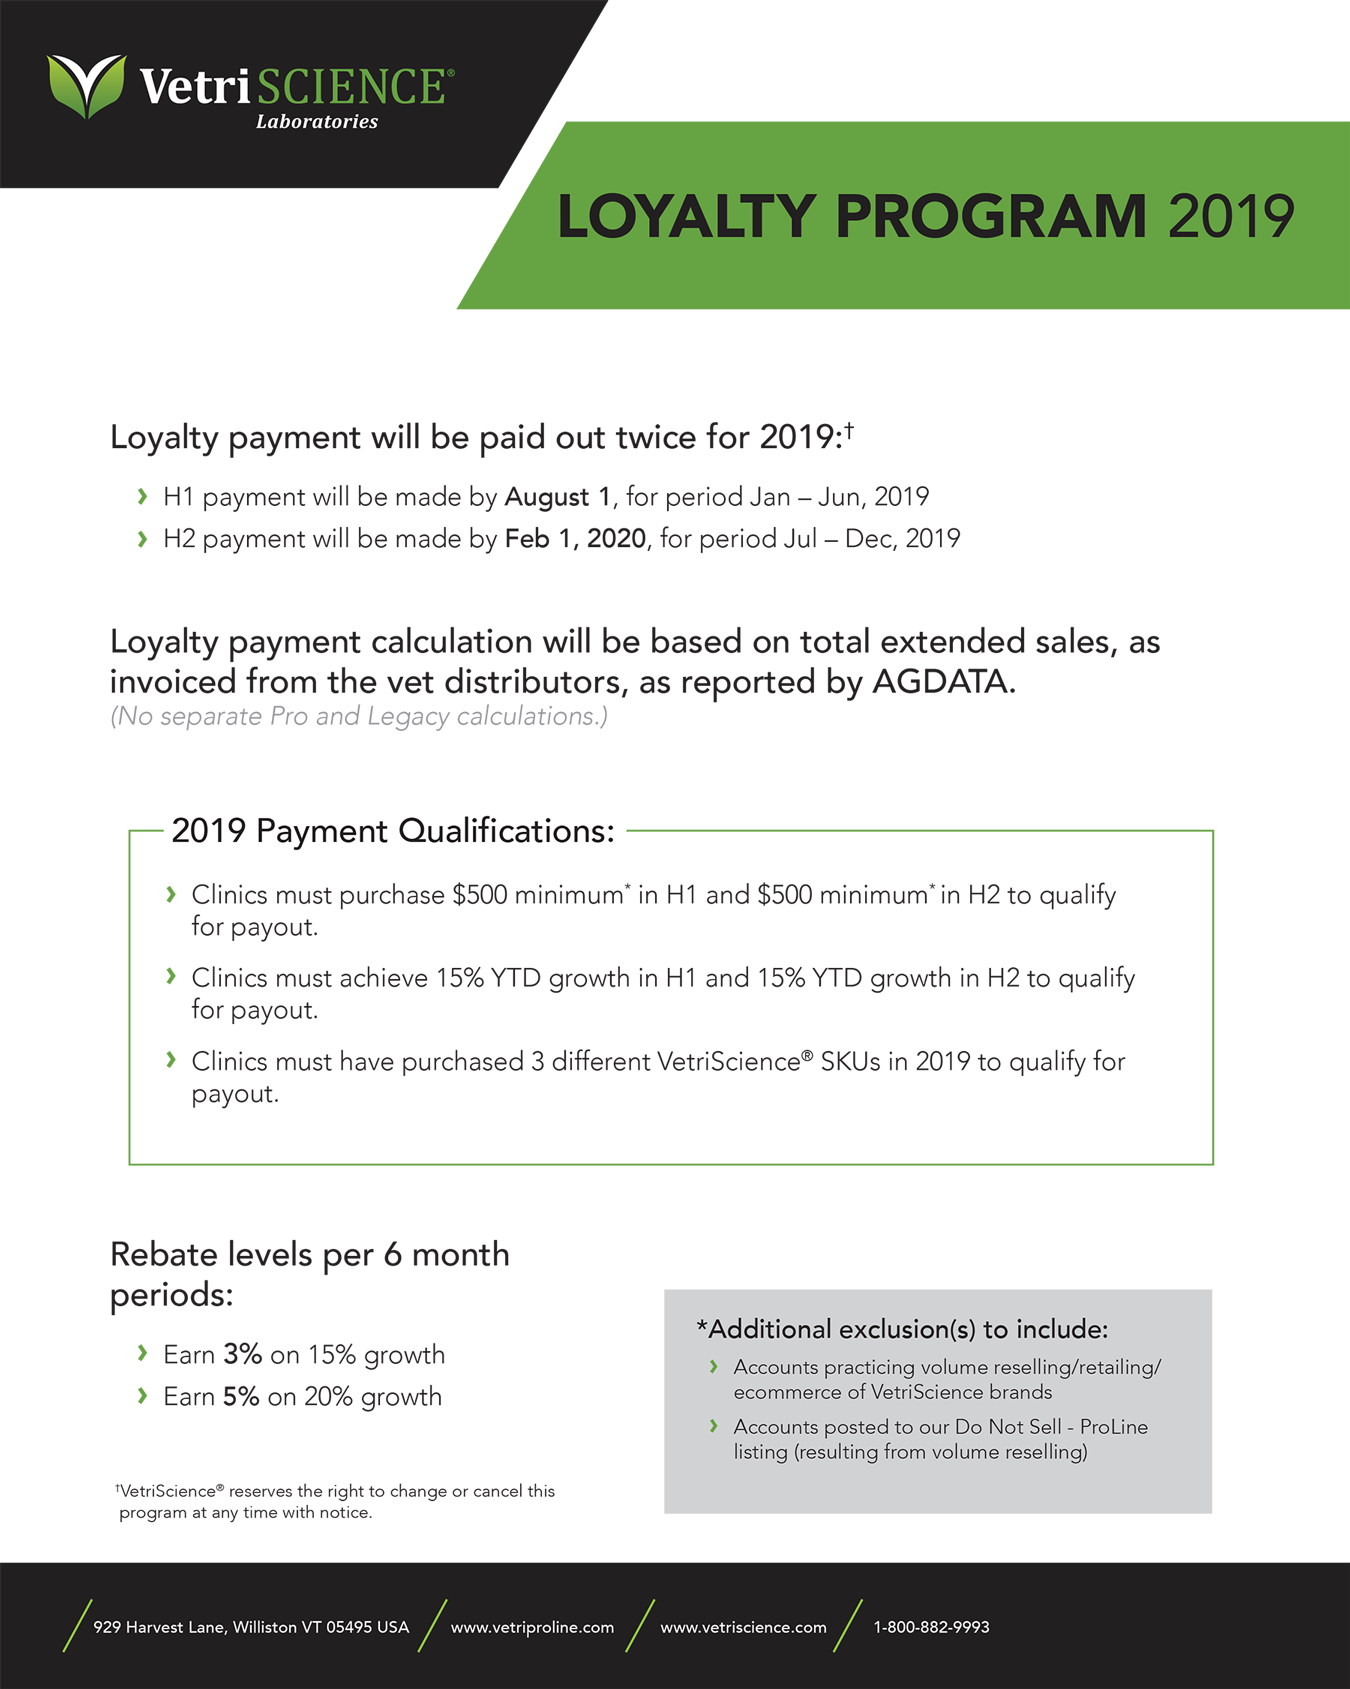 2019 Loyalty Program Information